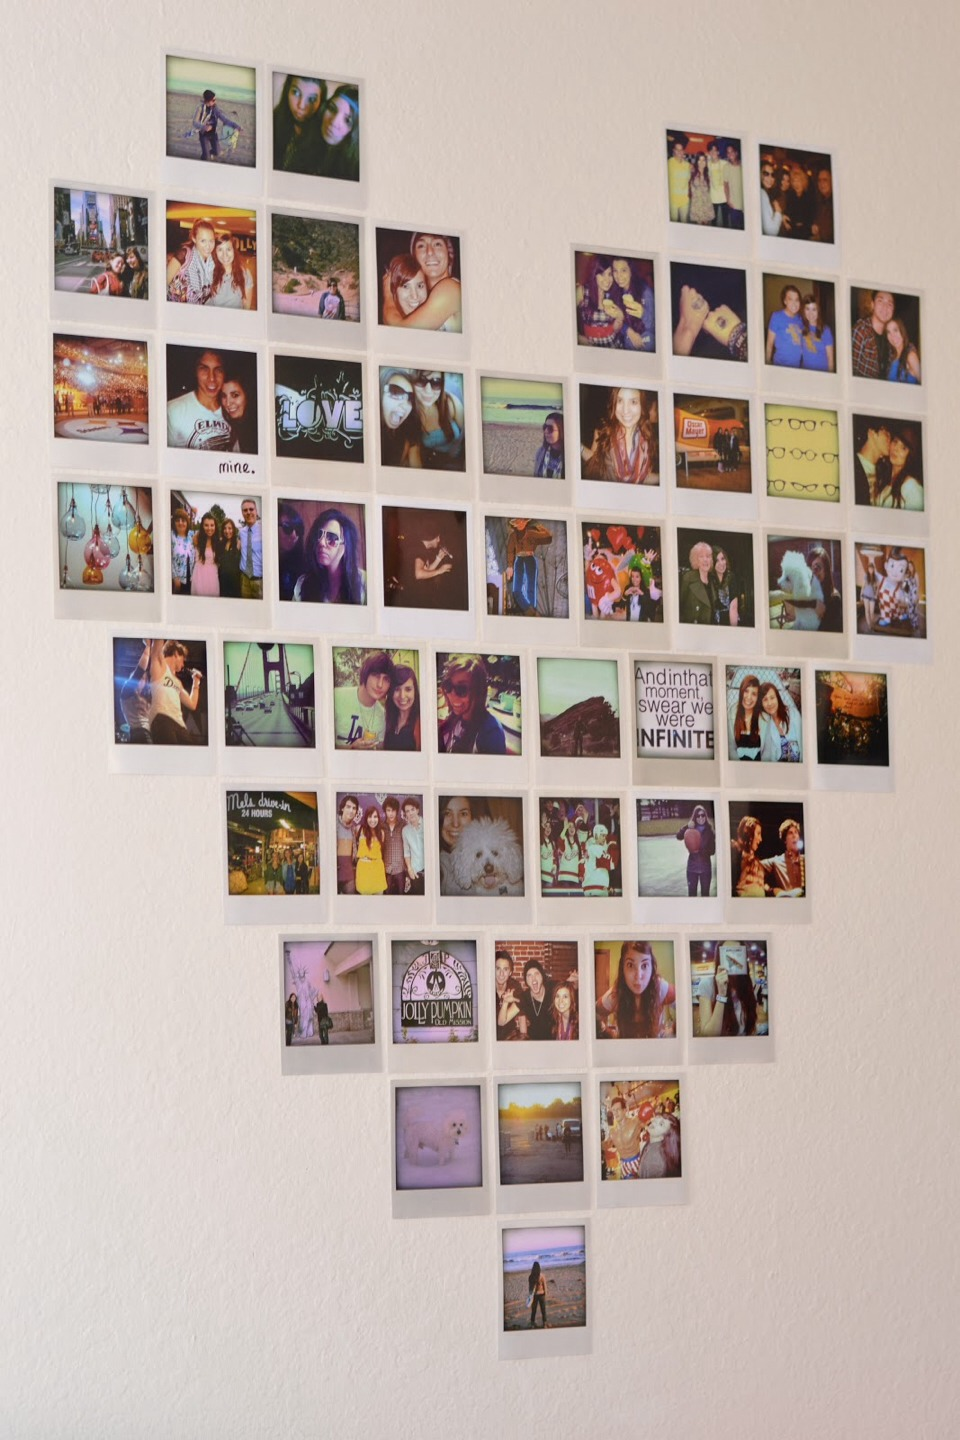 Get some of your fav photos developed and arrange them on the wall in to a. Musely